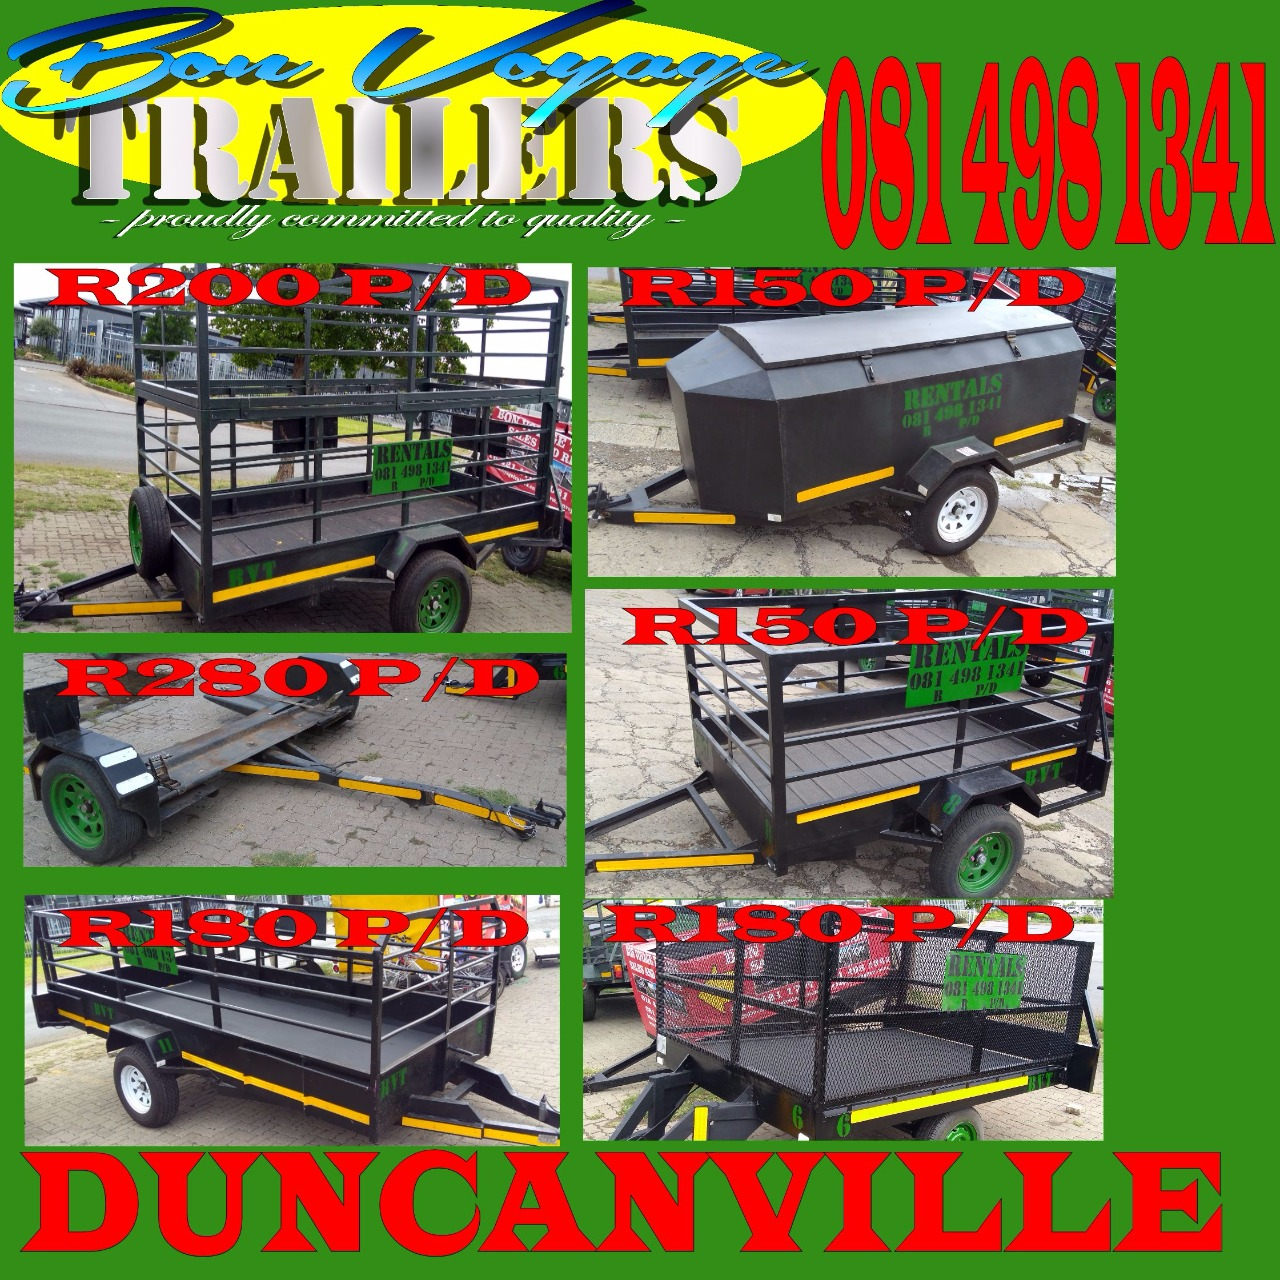 Trailer rental from R150 per day